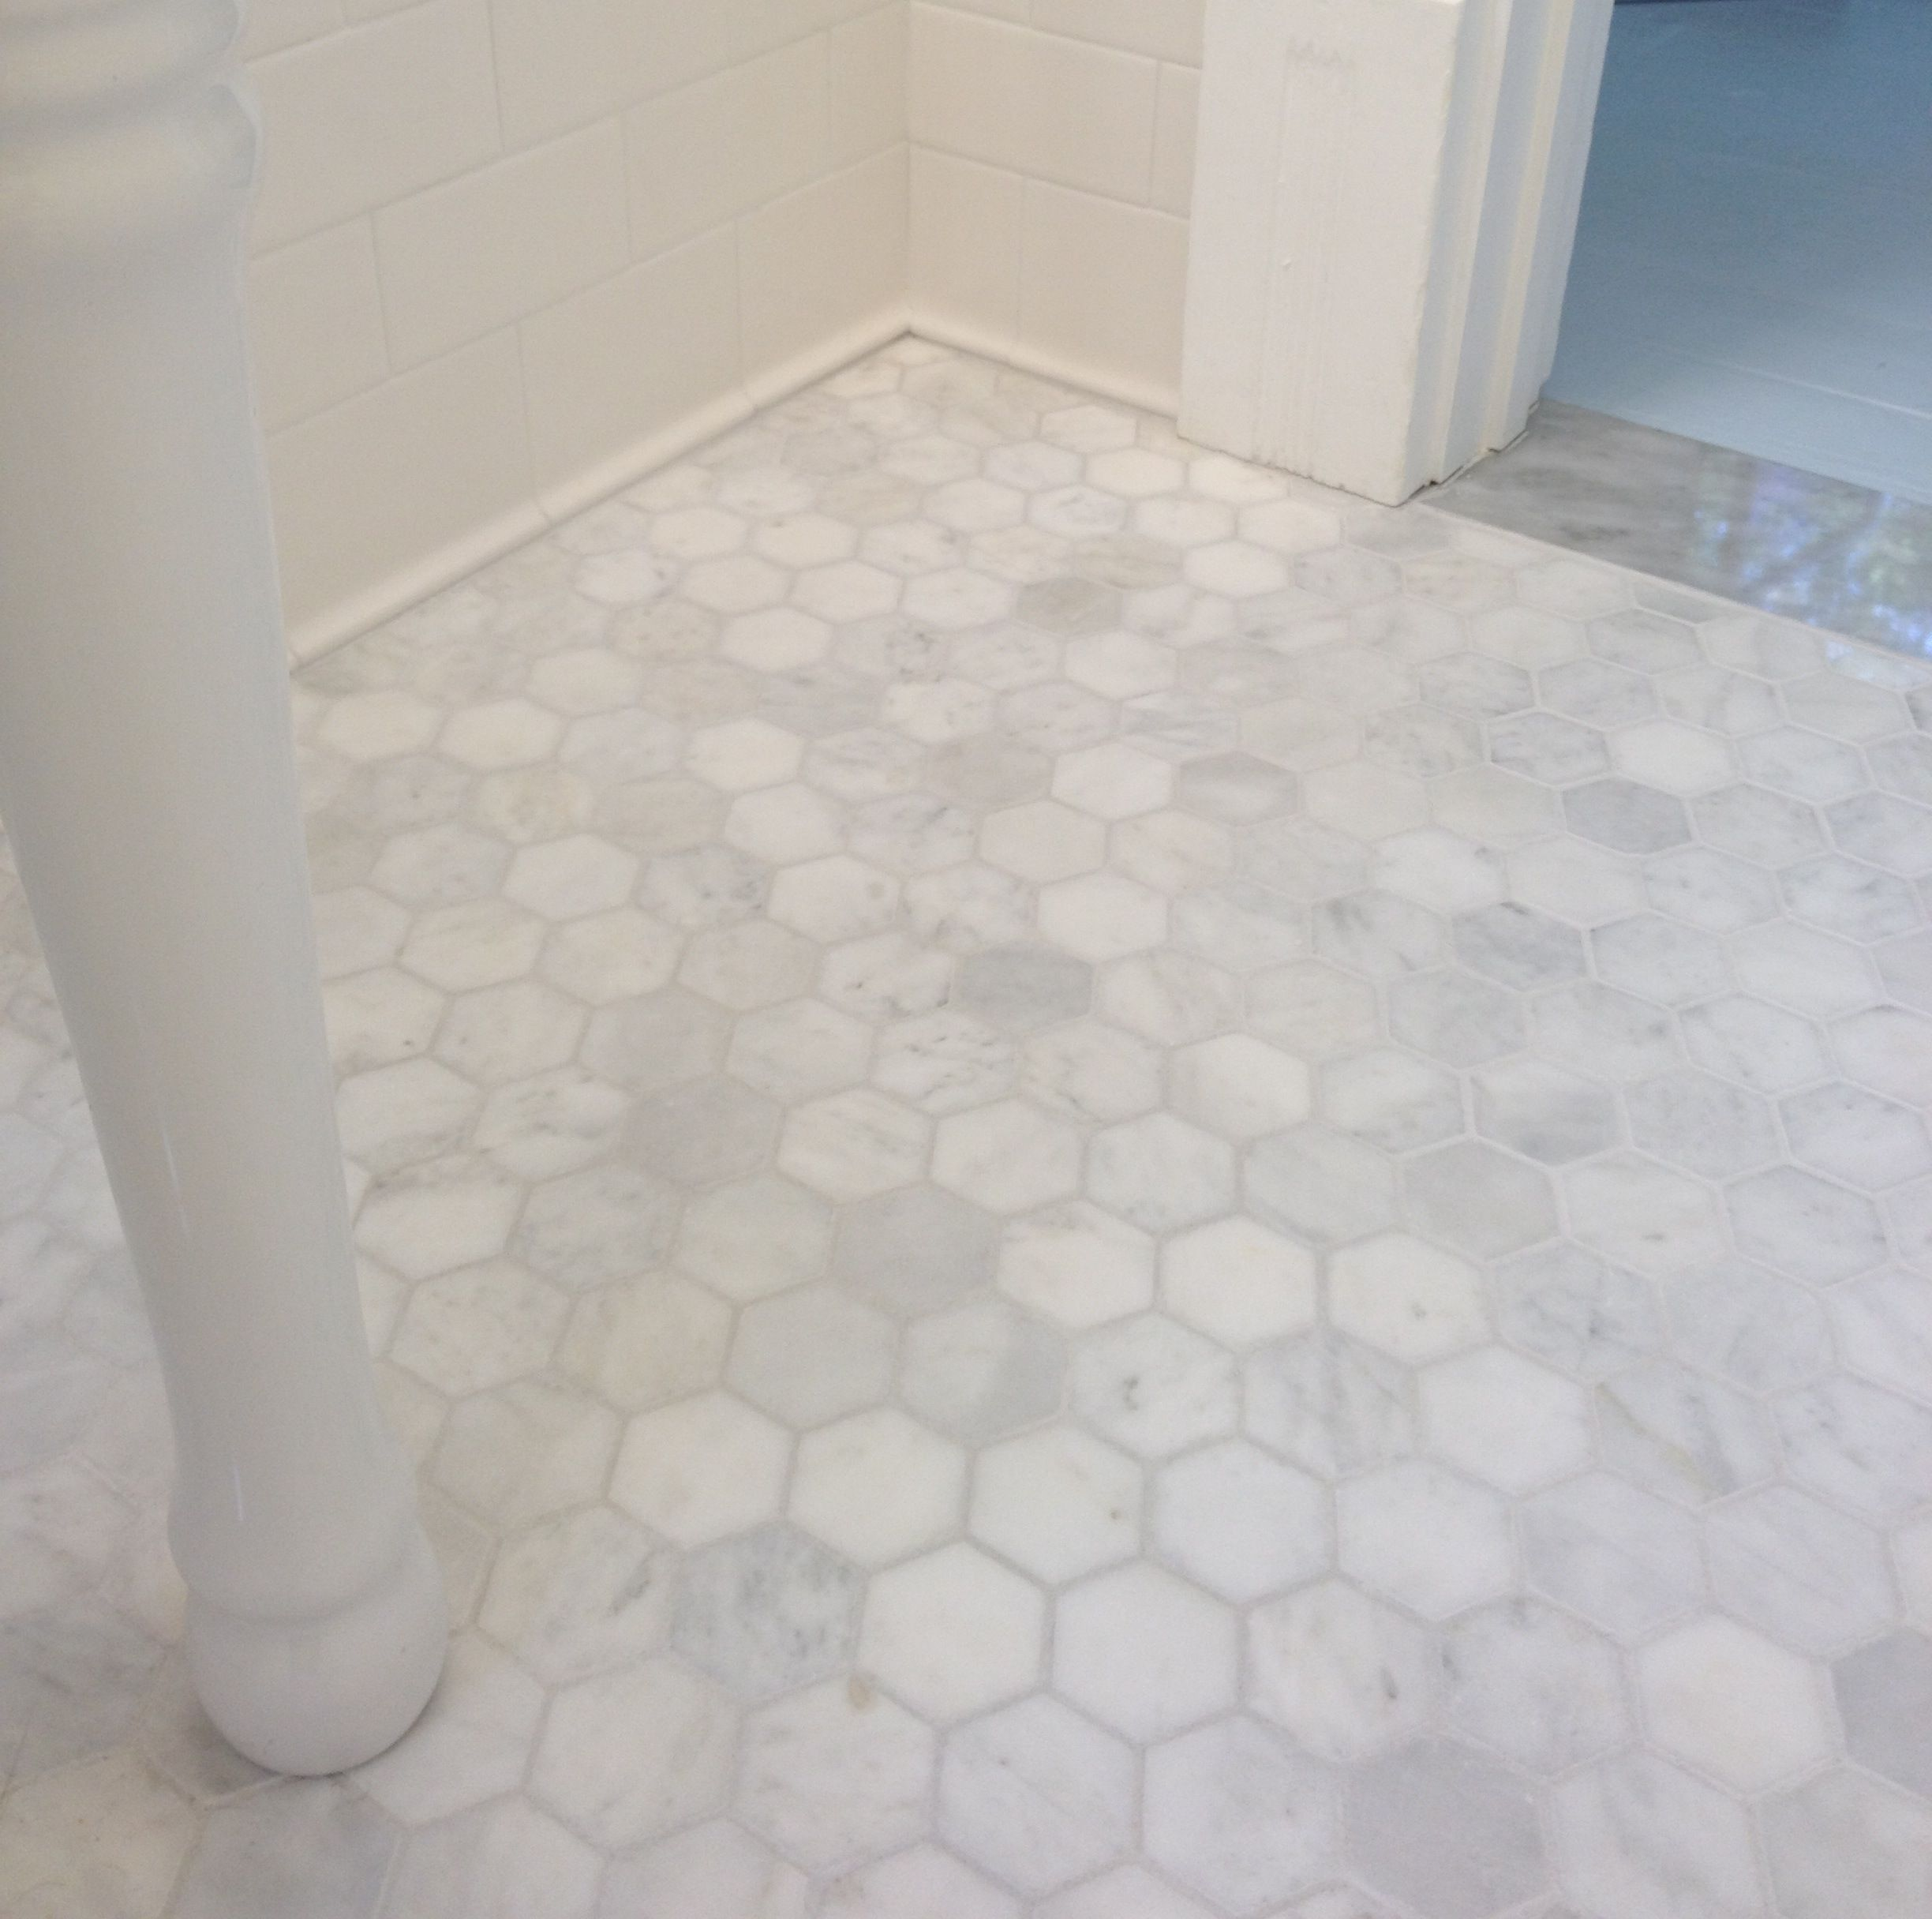 Tiled Bathroom Floors You Must Pick A Tile Or There Will Be No Floor Grey Hexagons